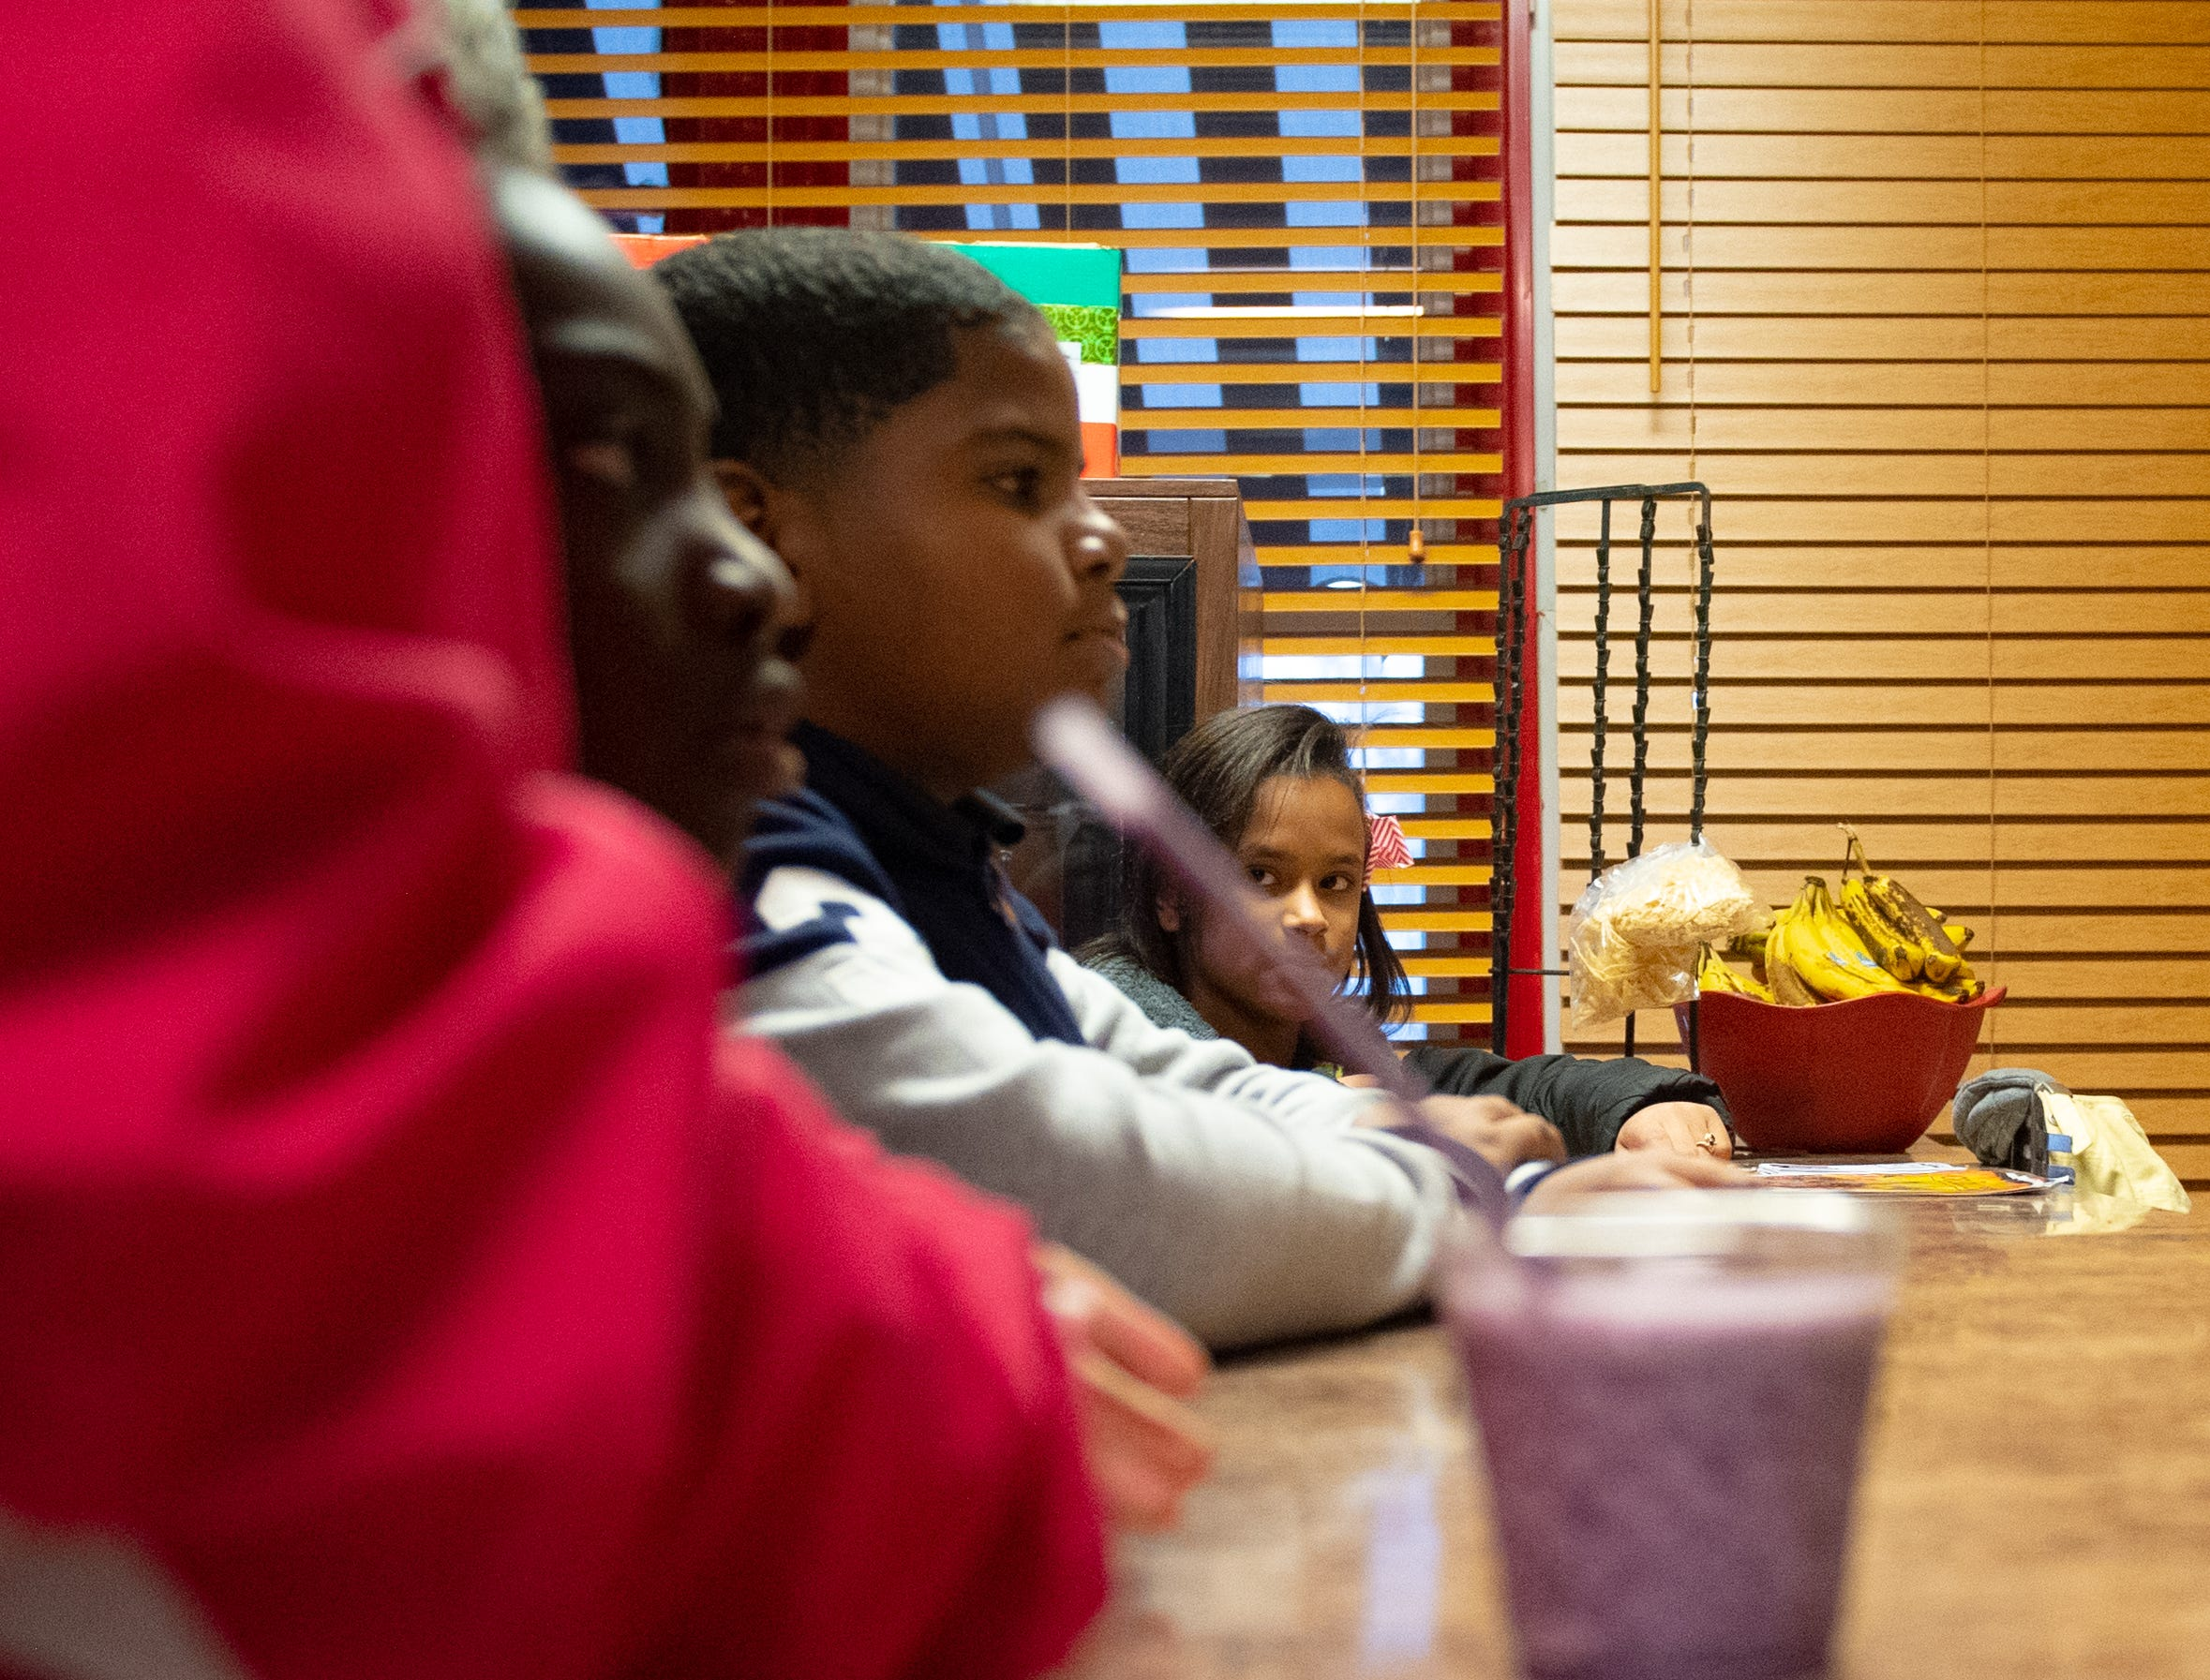 The elementary schools wait patiently for their smoothies to be made, November 27, 2018.